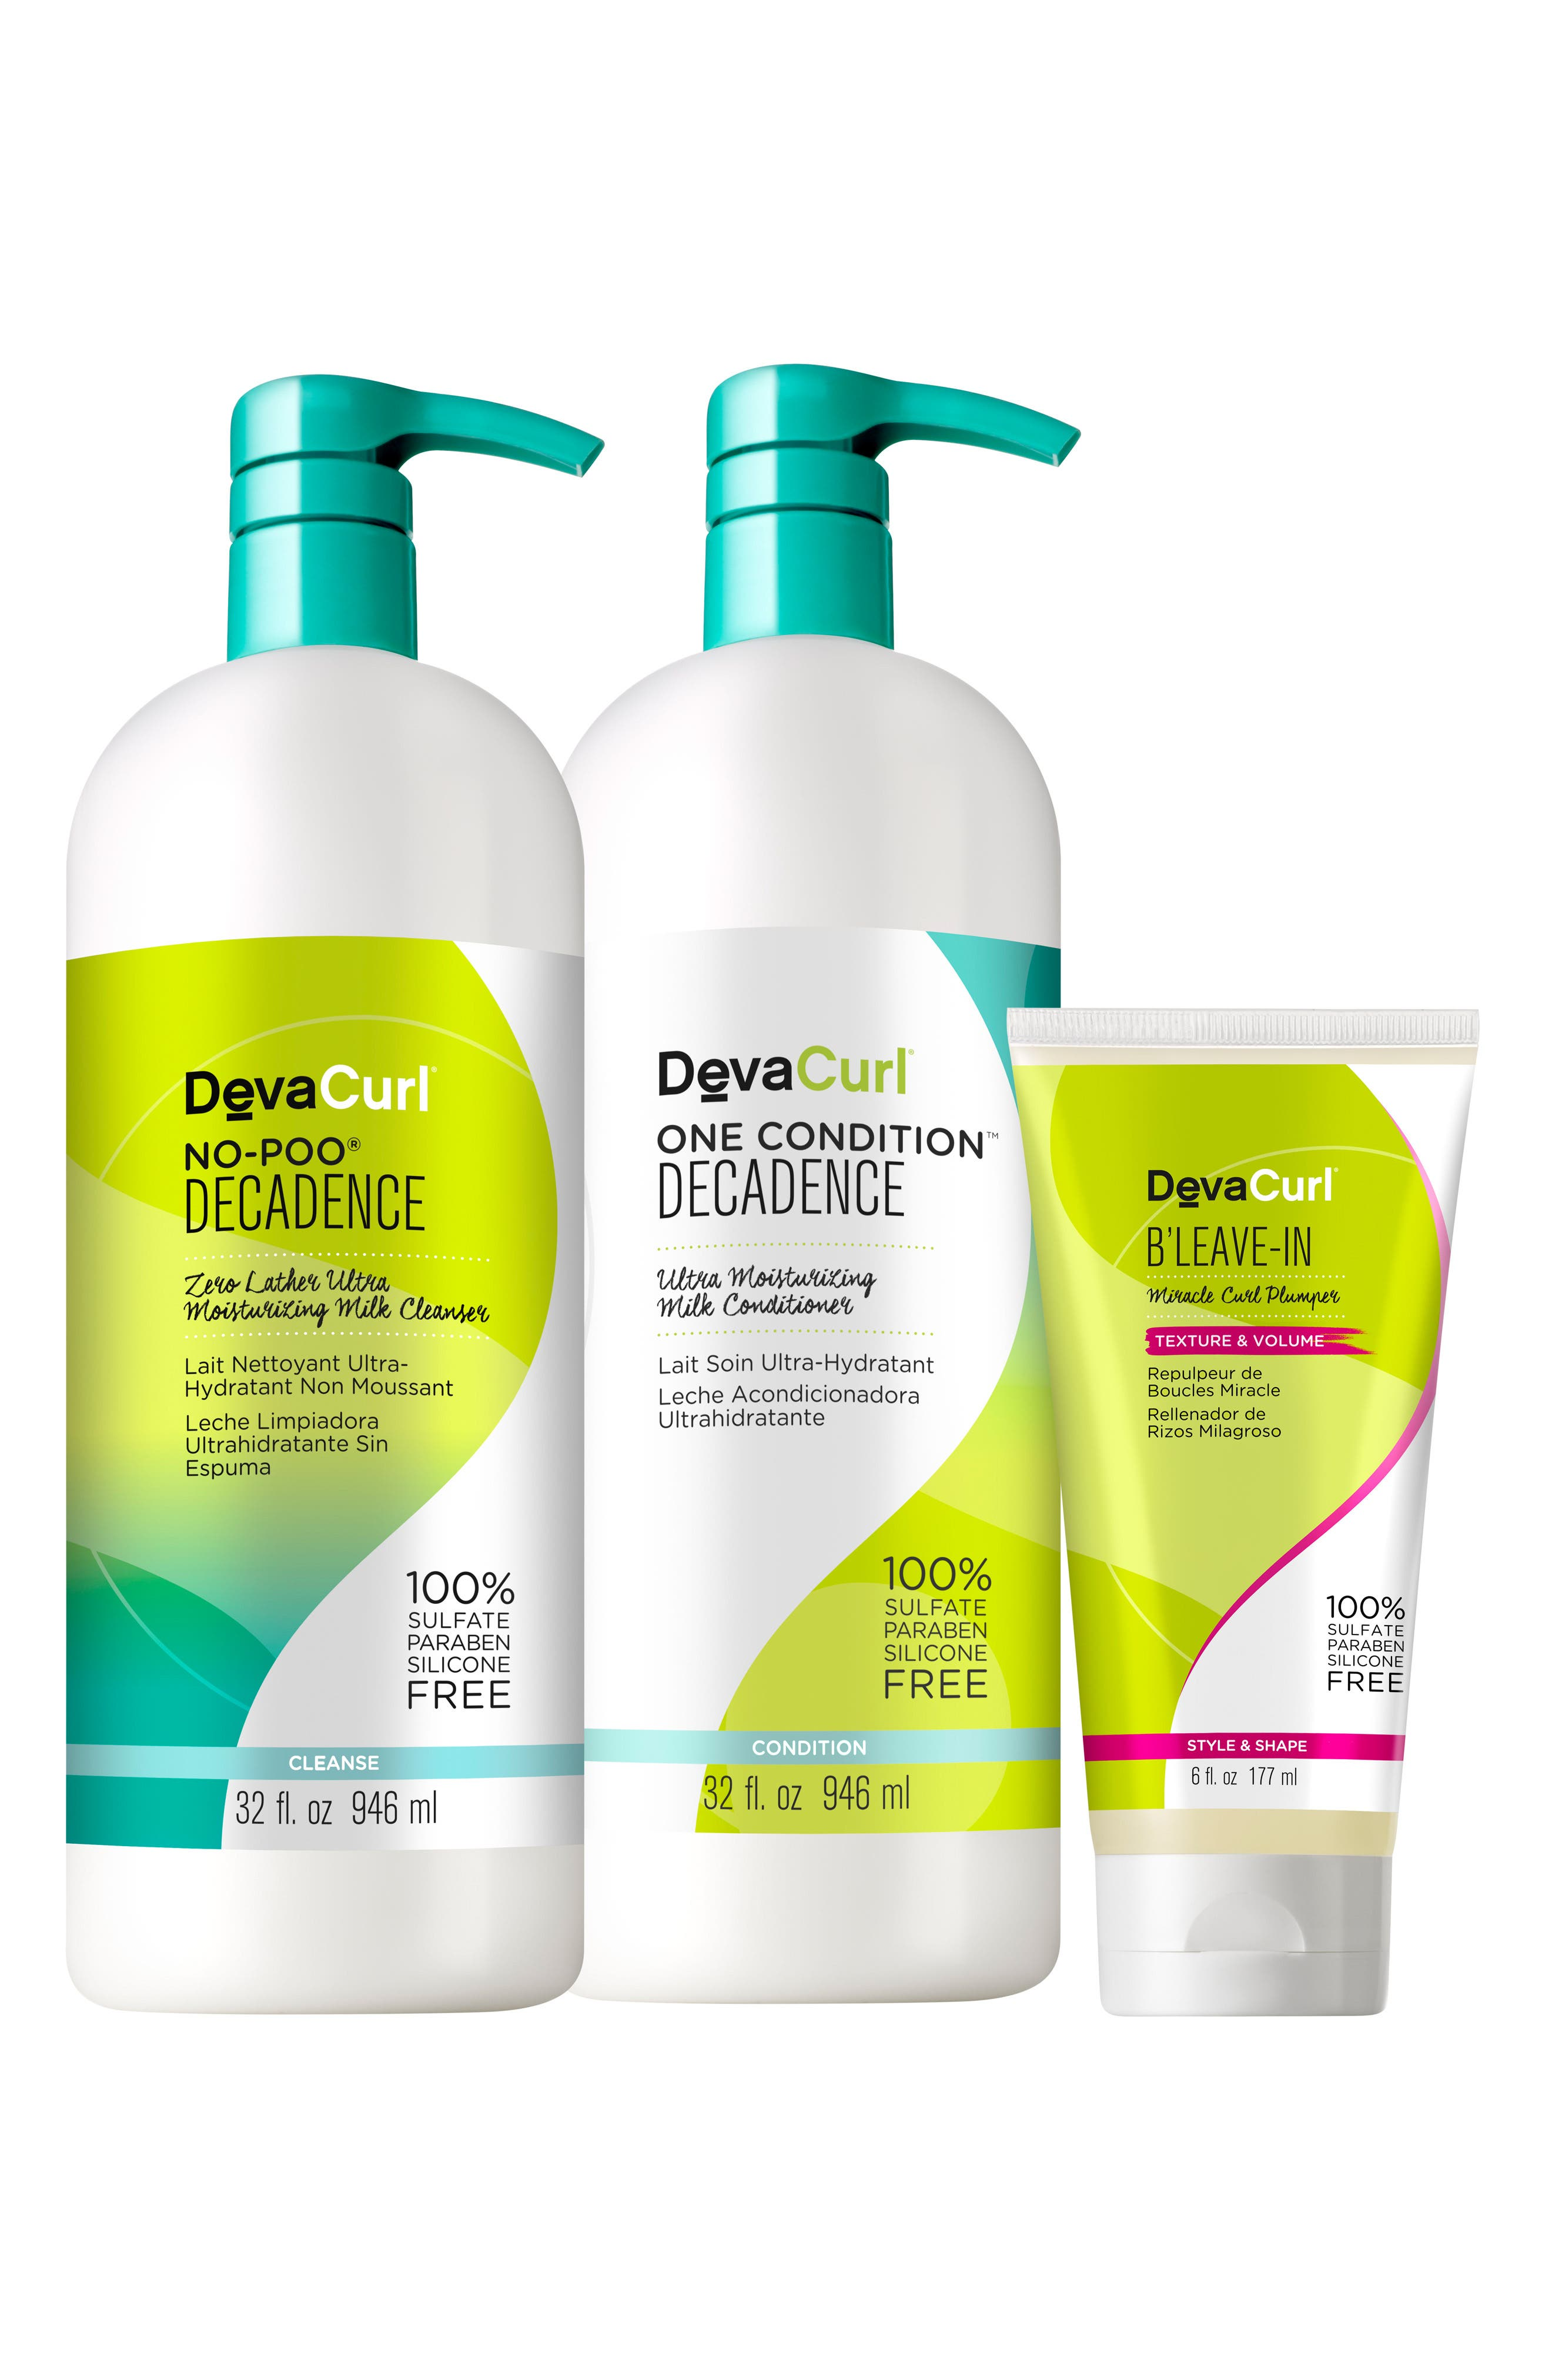 DevaCurl Dream Big Super Curly Edition Collection ($108 Value)